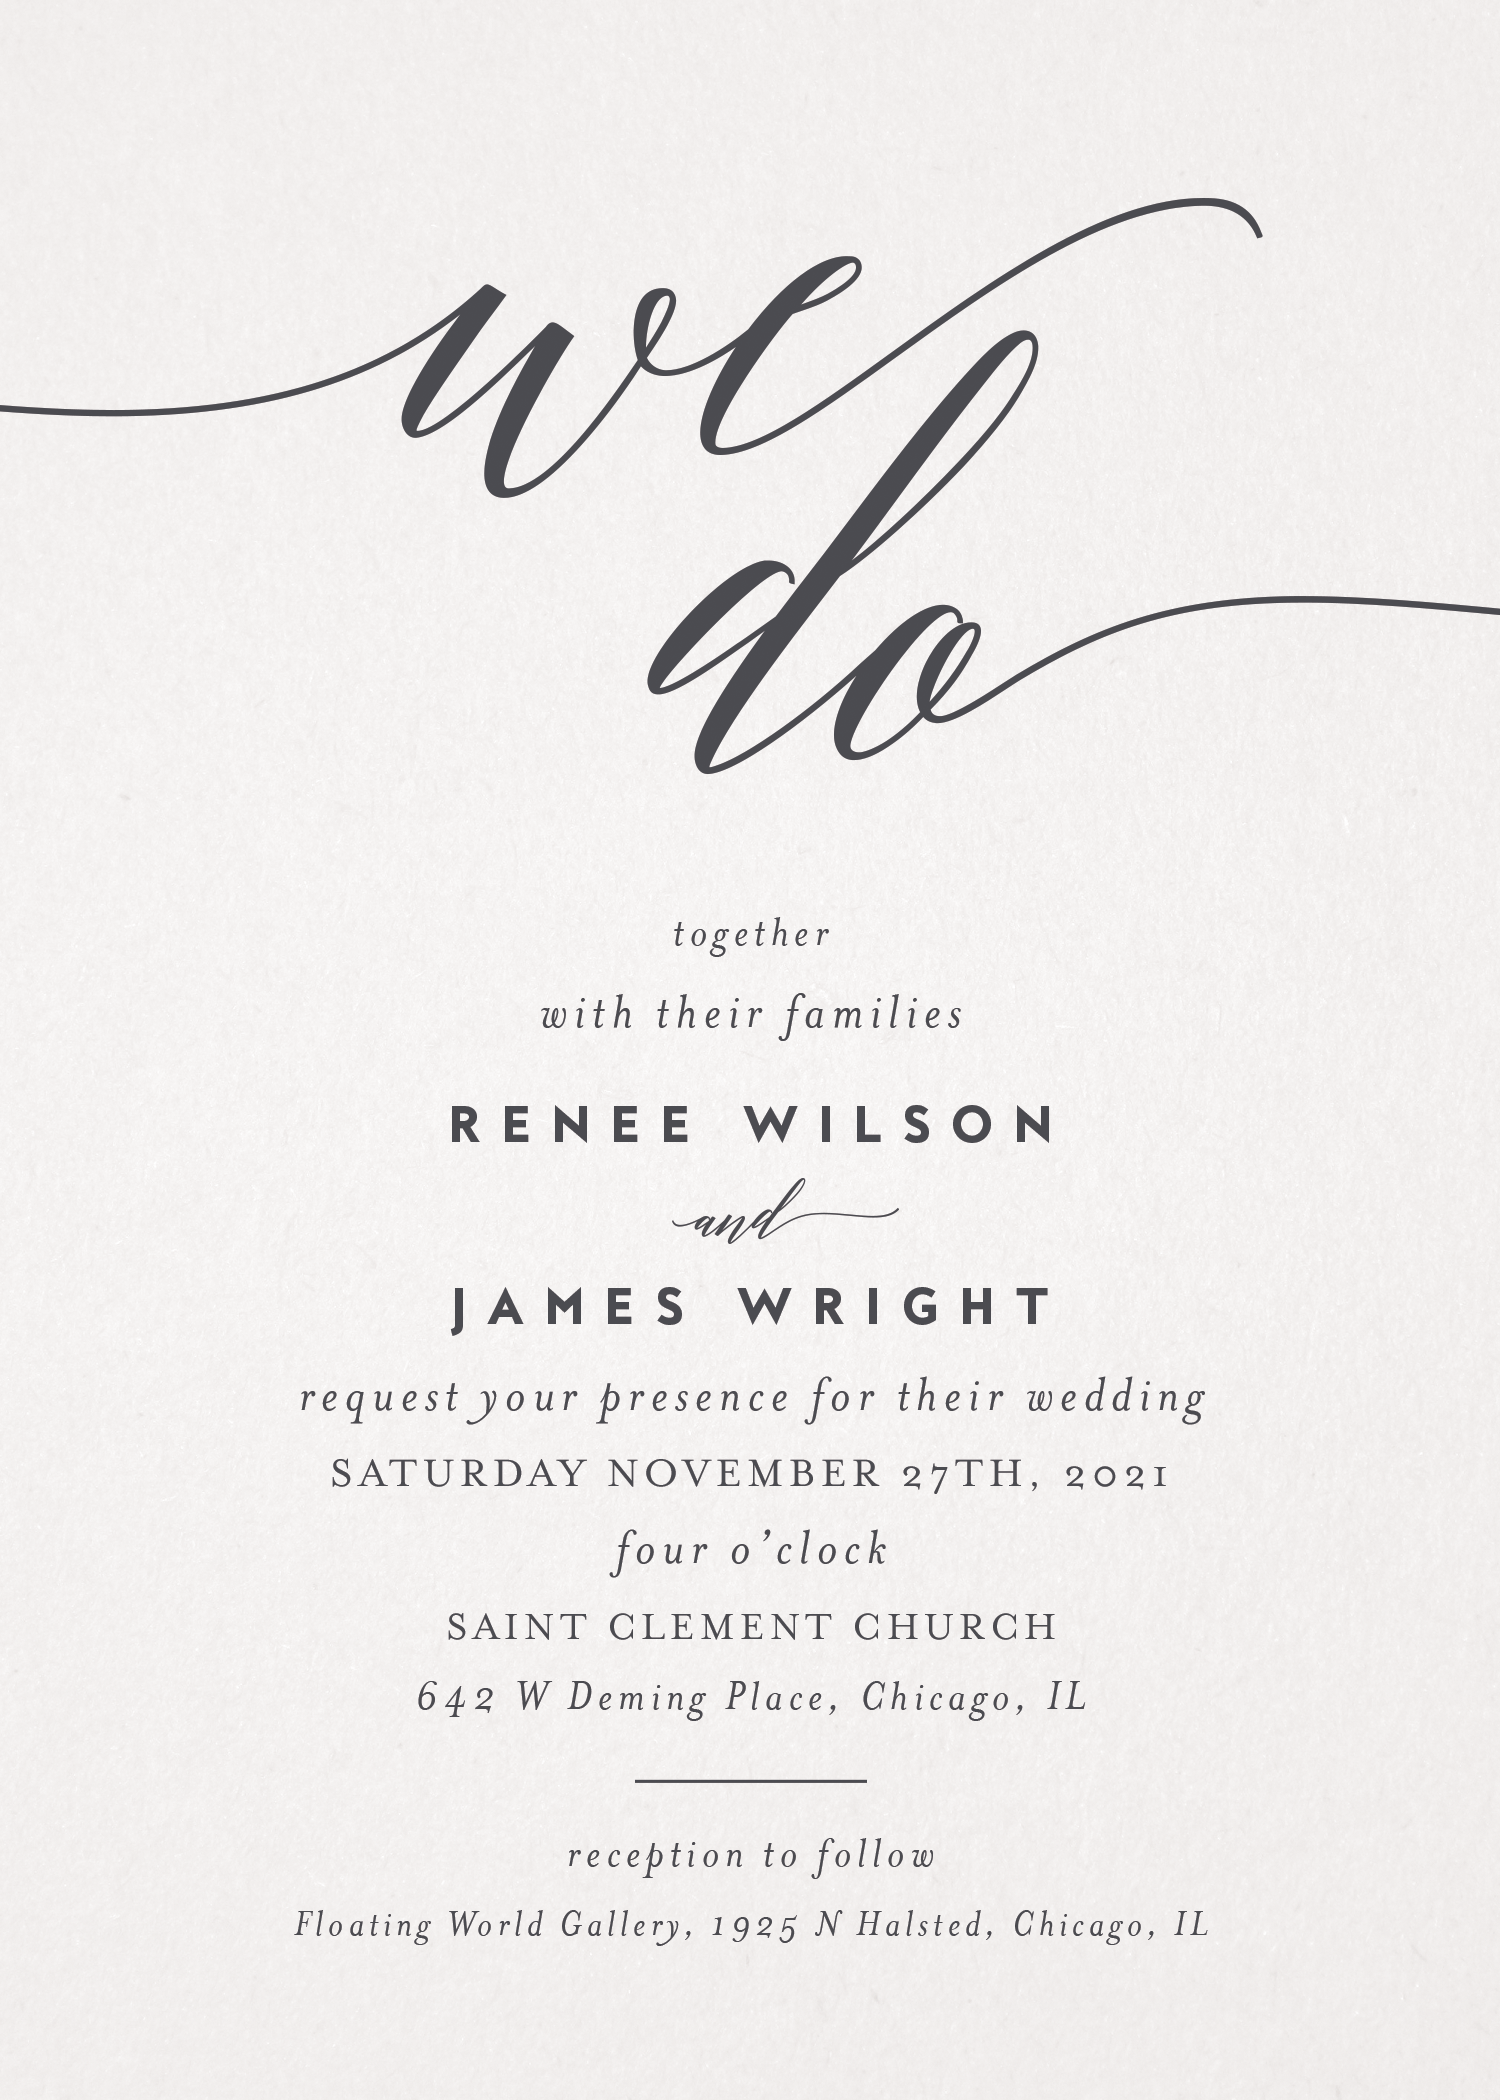 """Customizable, modern wedding invitation showcasing """"We Do"""" message in calligraphy font with your names and wedding details below."""